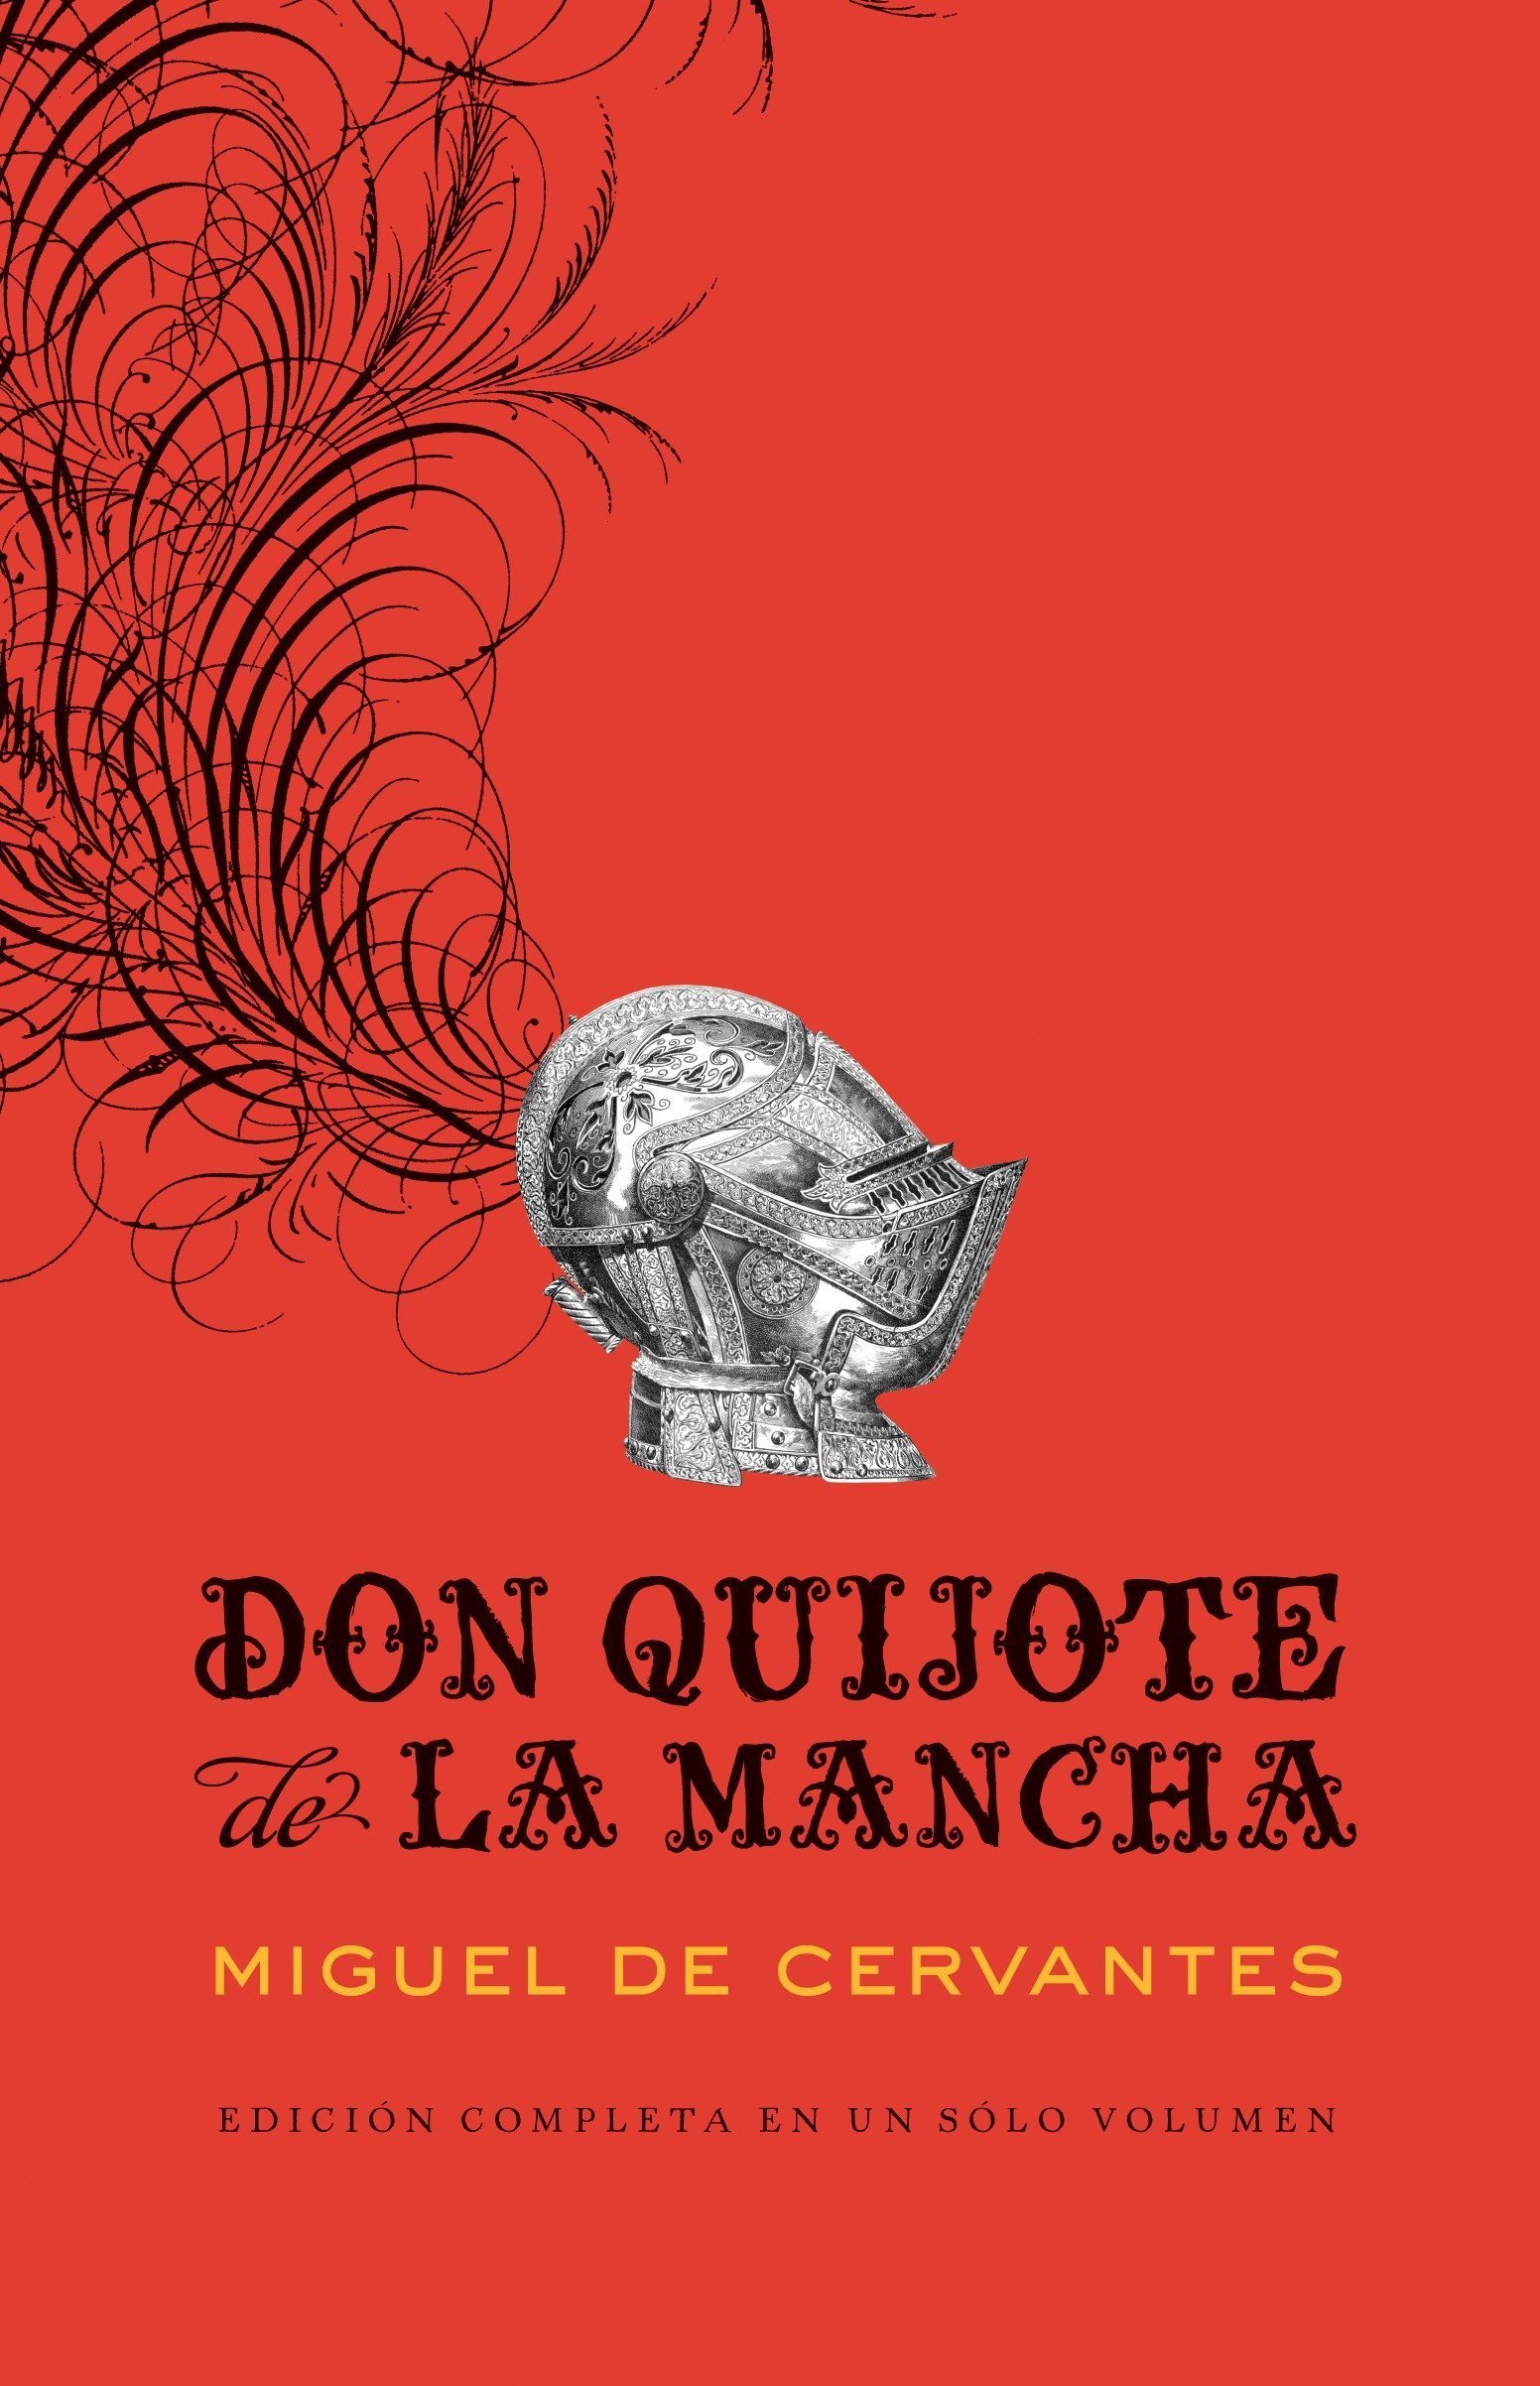 Amazon.com: Don Quijote de la Mancha (Spanish Edition ...